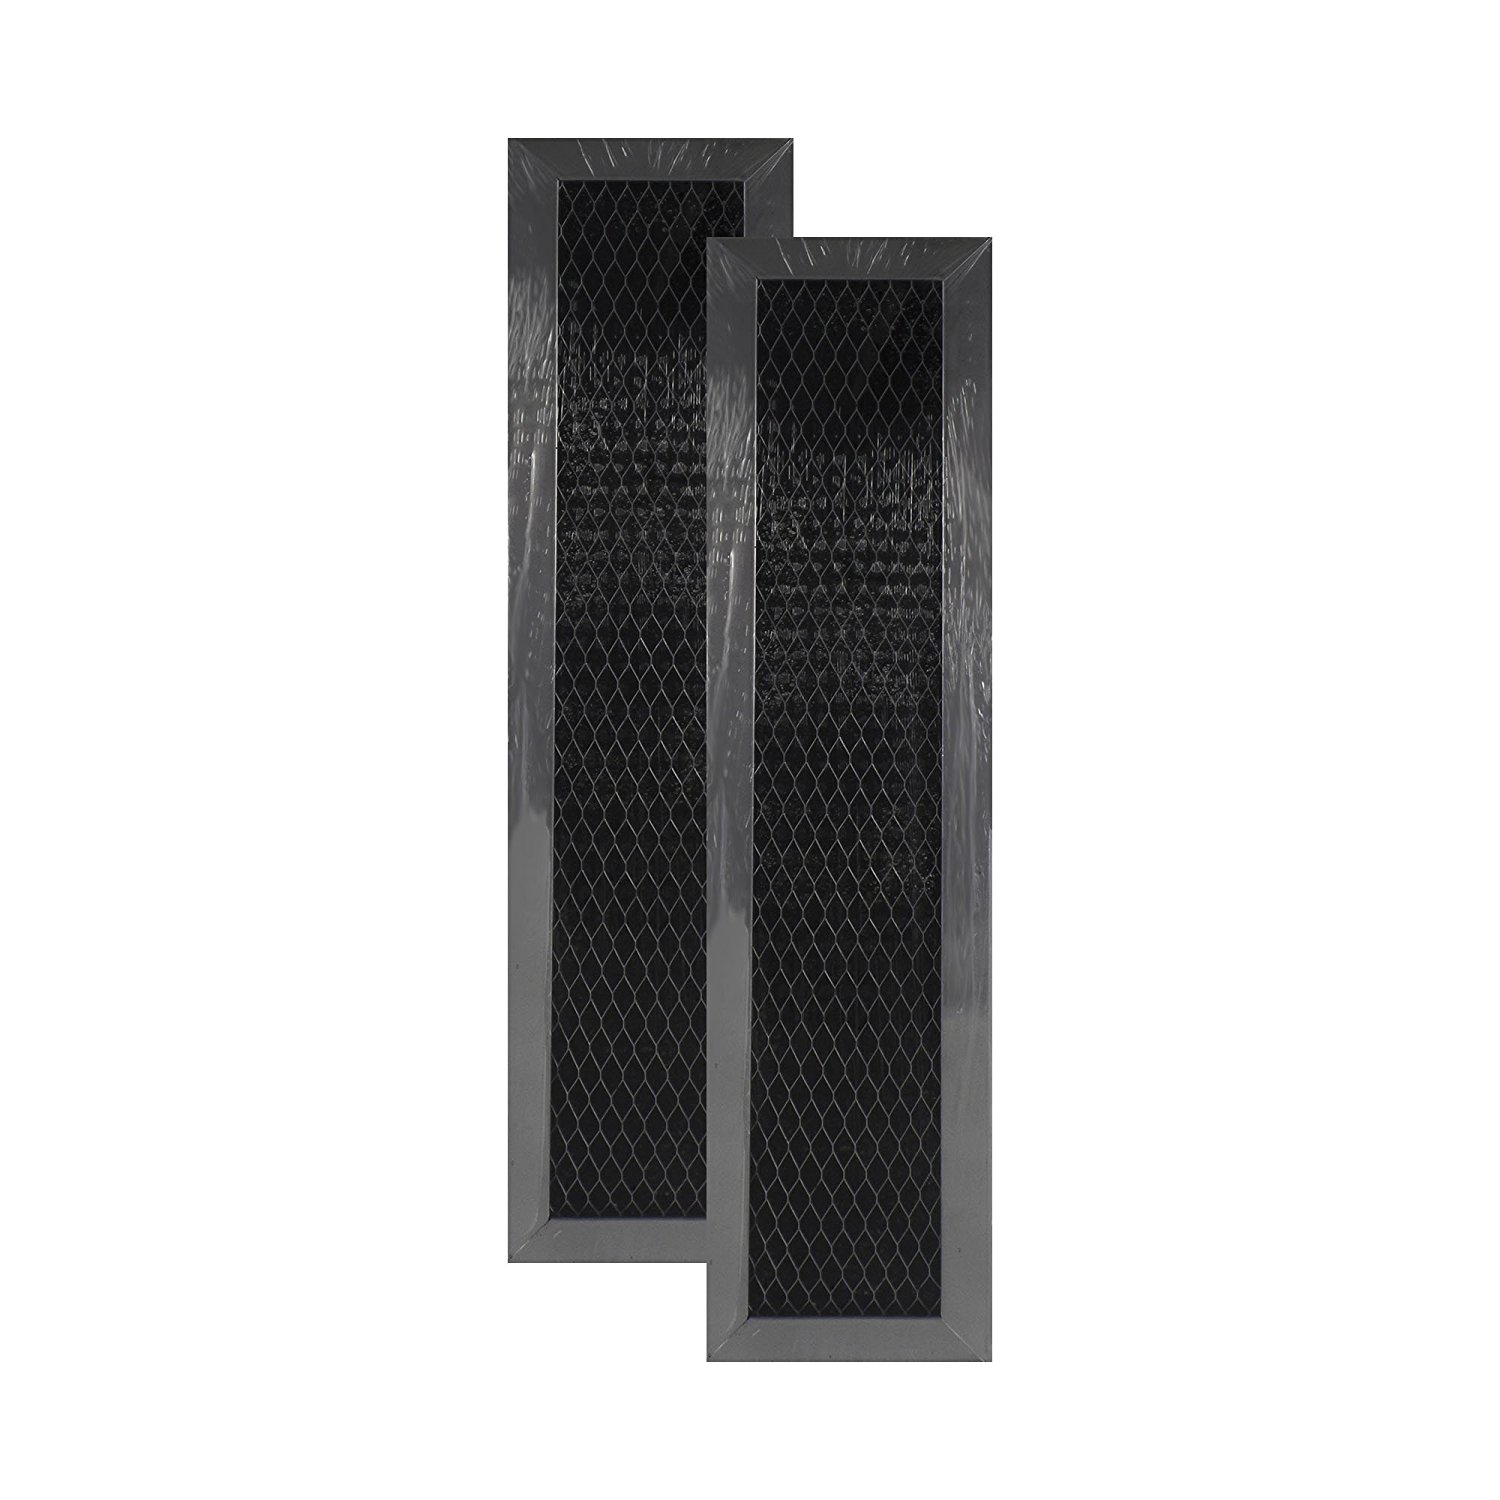 2 PACK Air Filter Factory Compatible Replacement For LG 5230W2A003A Microwave Oven Charcoal Carbon Filter